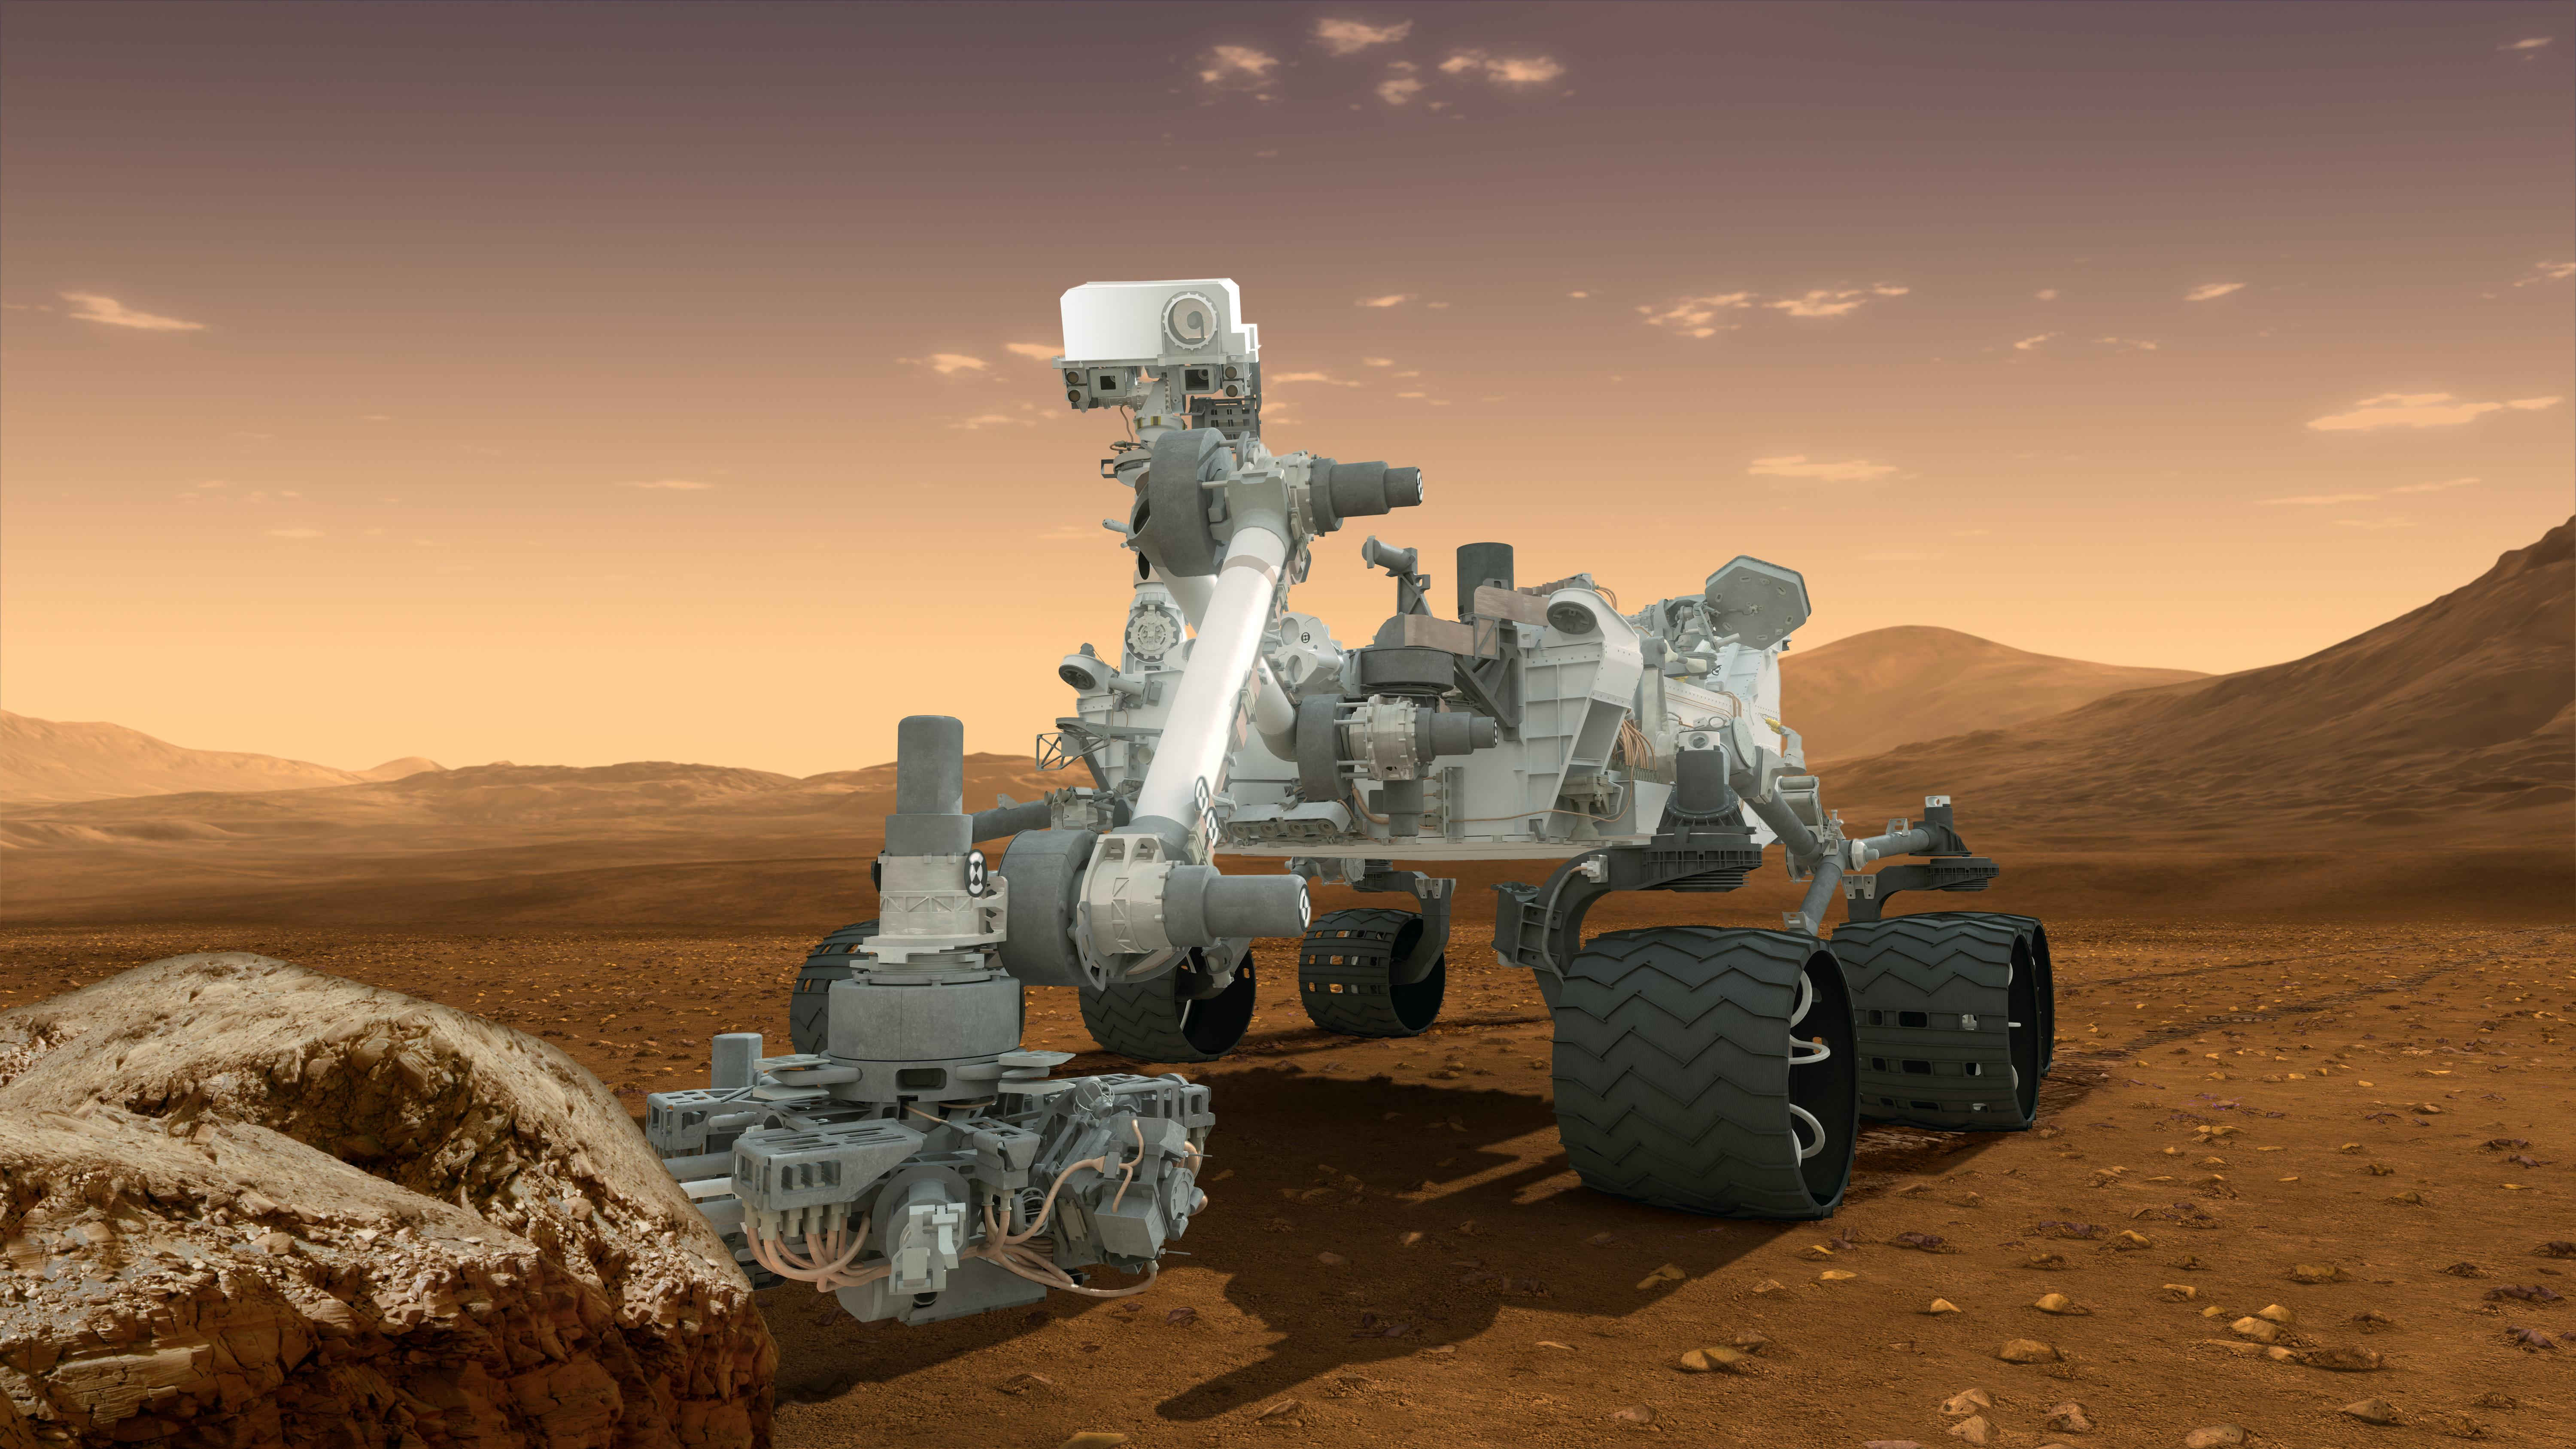 Mars rover technology adapted to detect gas leaksNasa Wallpaper Curiosity